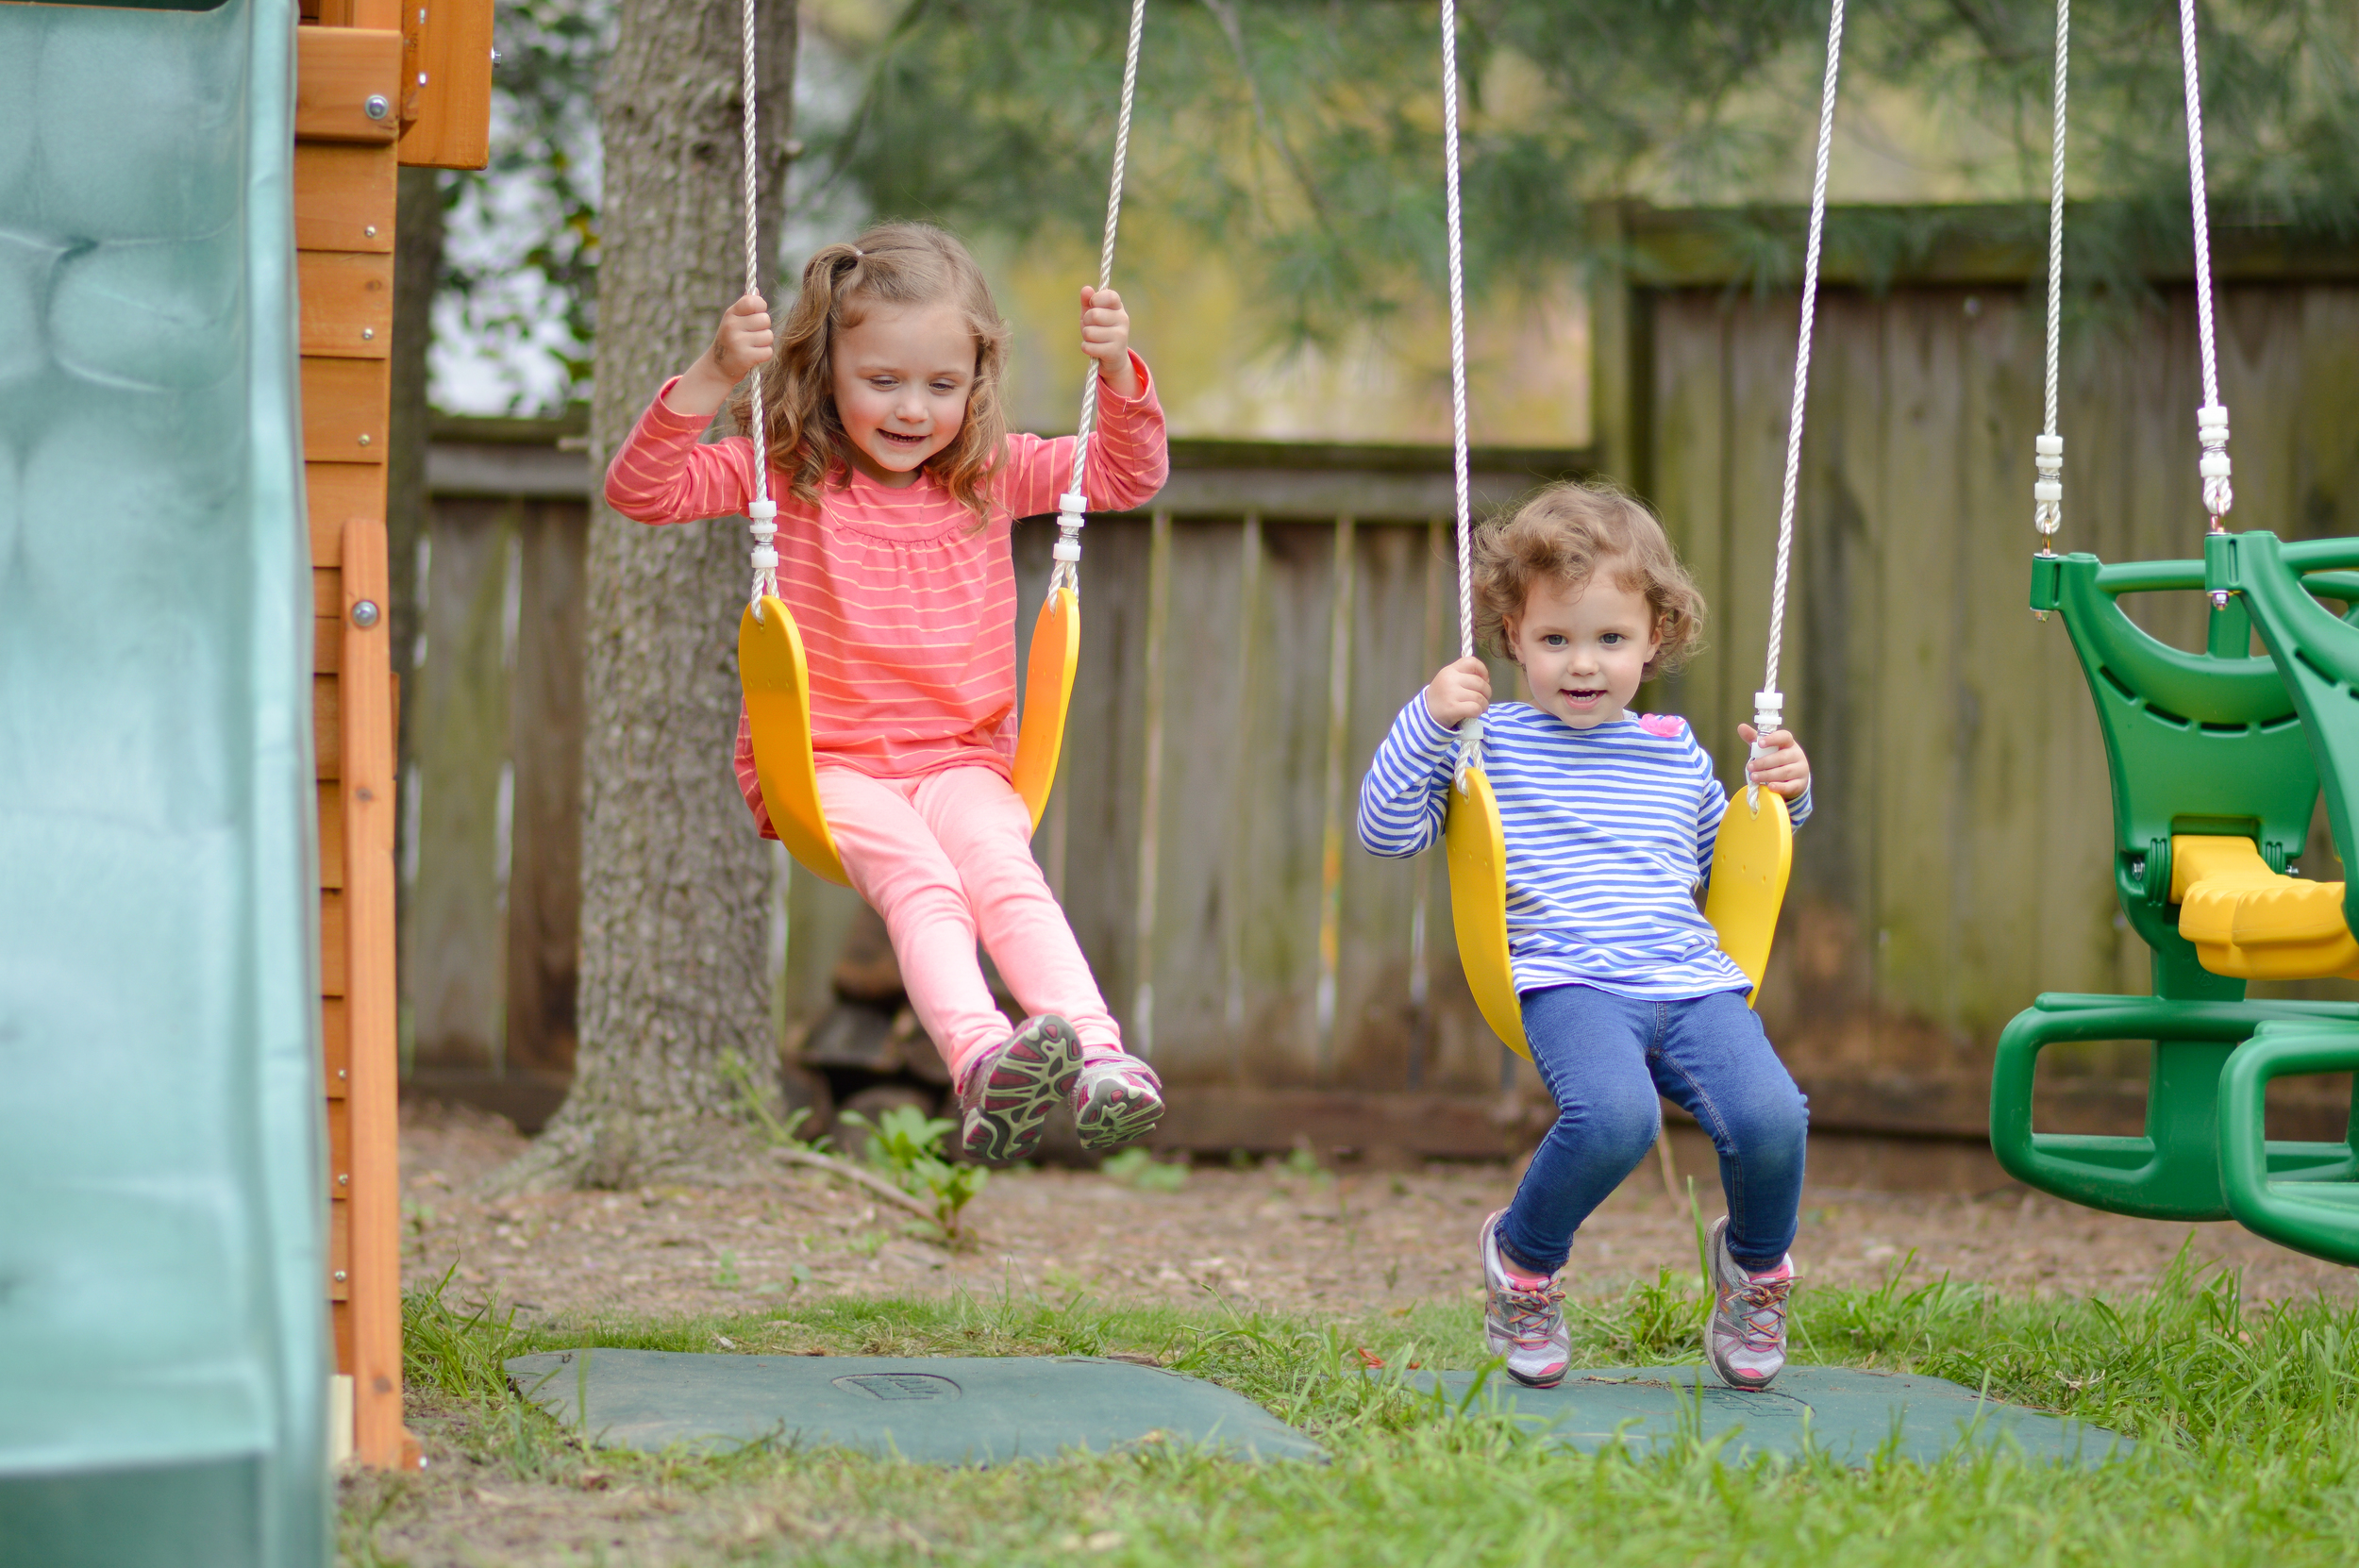 Swing Set fun 2014-51.jpg